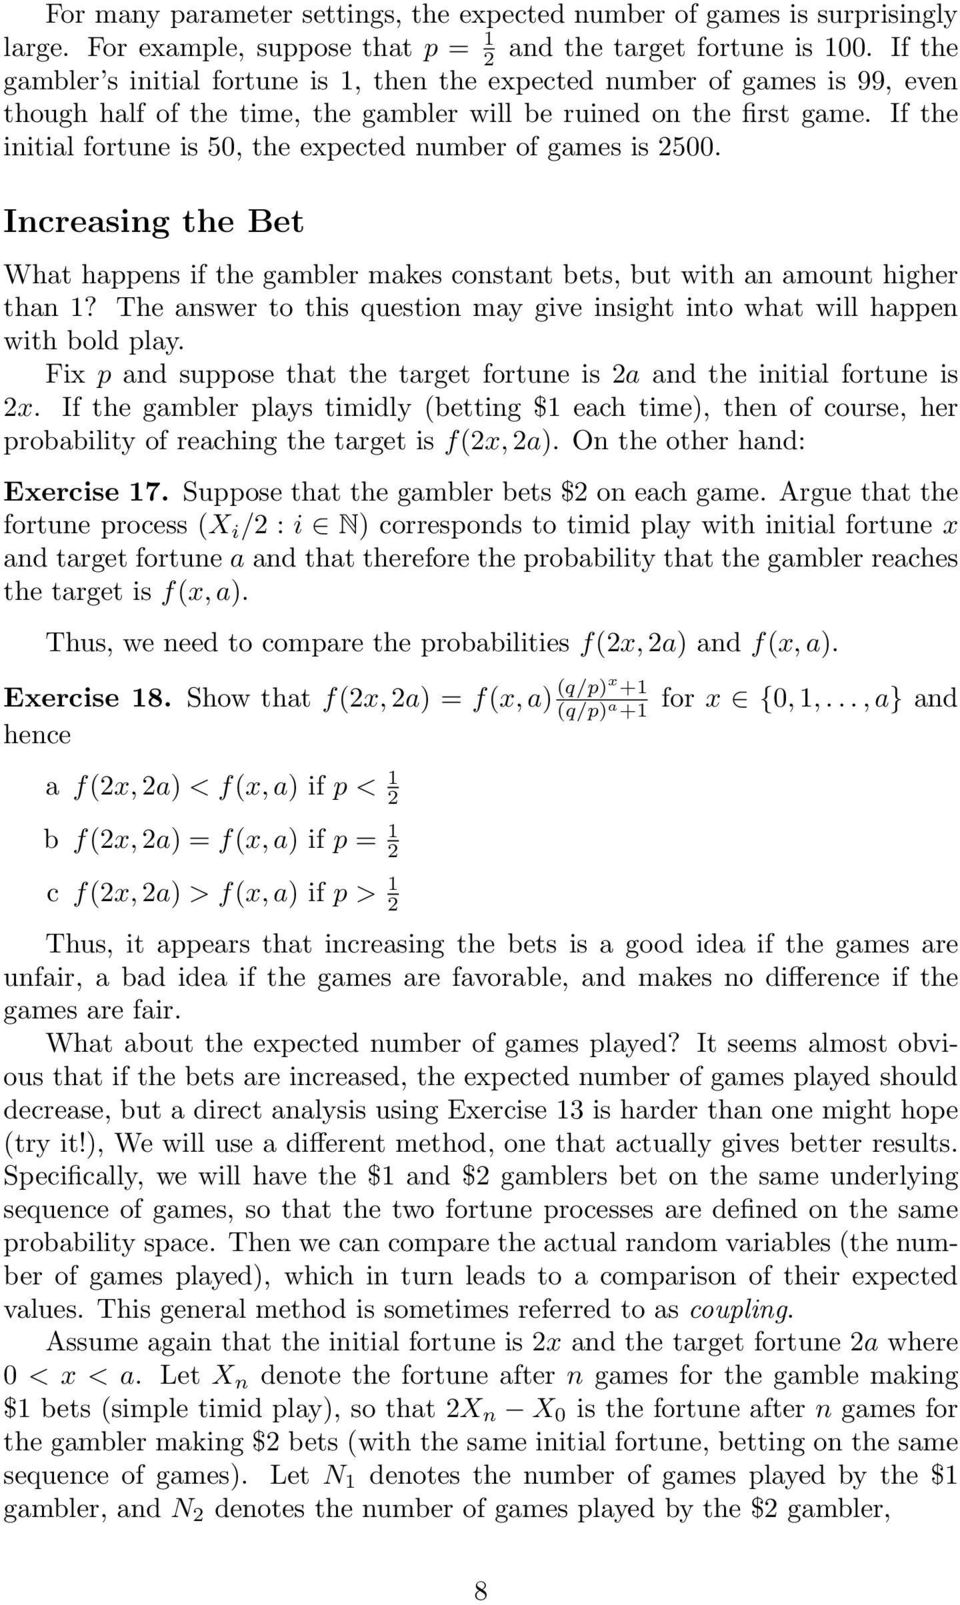 If the initial fortune is 50, the expected number of games is 2500. Increasing the Bet What happens if the gambler makes constant bets, but with an amount higher than 1?